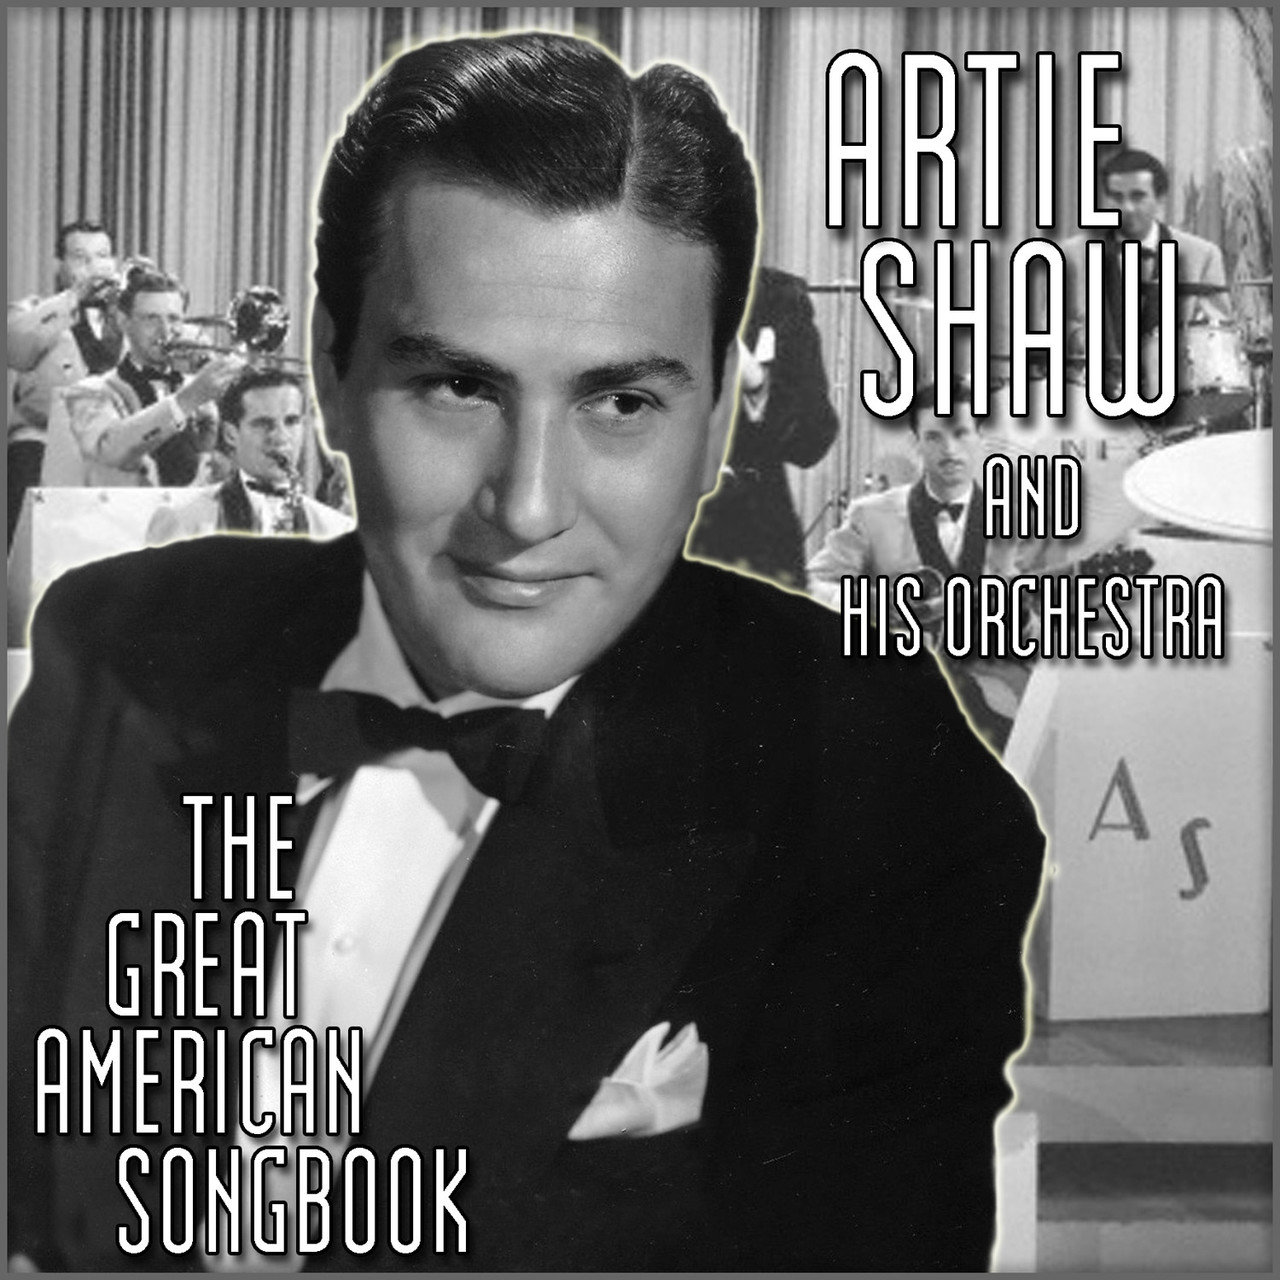 Artie Shaw Yesterdays The Great American Songbook By Artie Shaw His Orchestra On Tidal